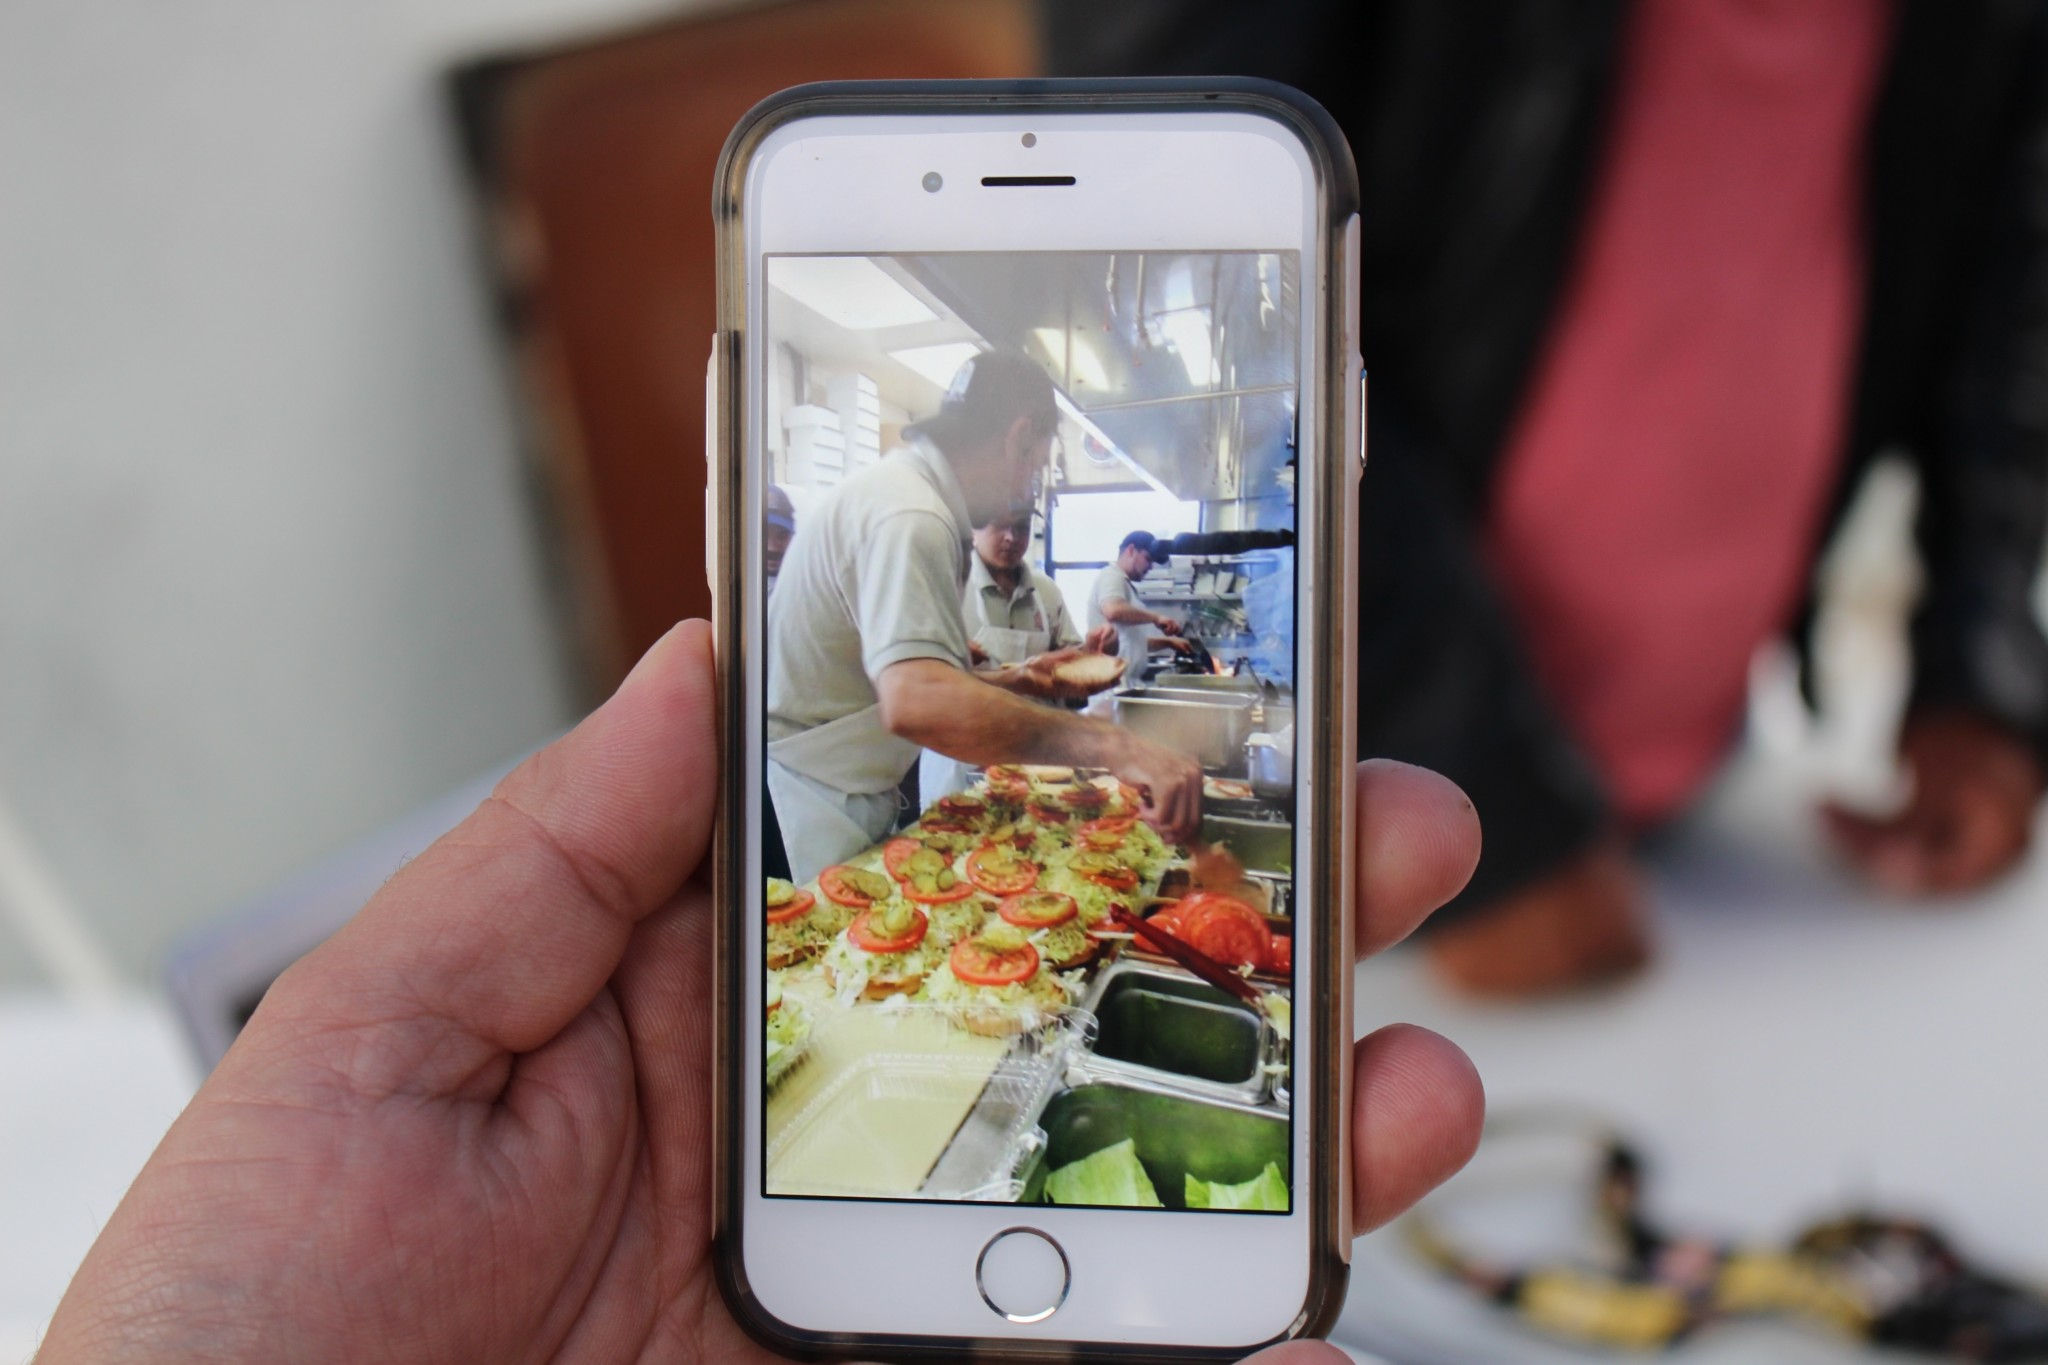 Primo Jimenez holds up his phone, showing a photo of him flipping burgers at work. Vericose veins have made it too painful to stand. (Photo: Karen Foshay)